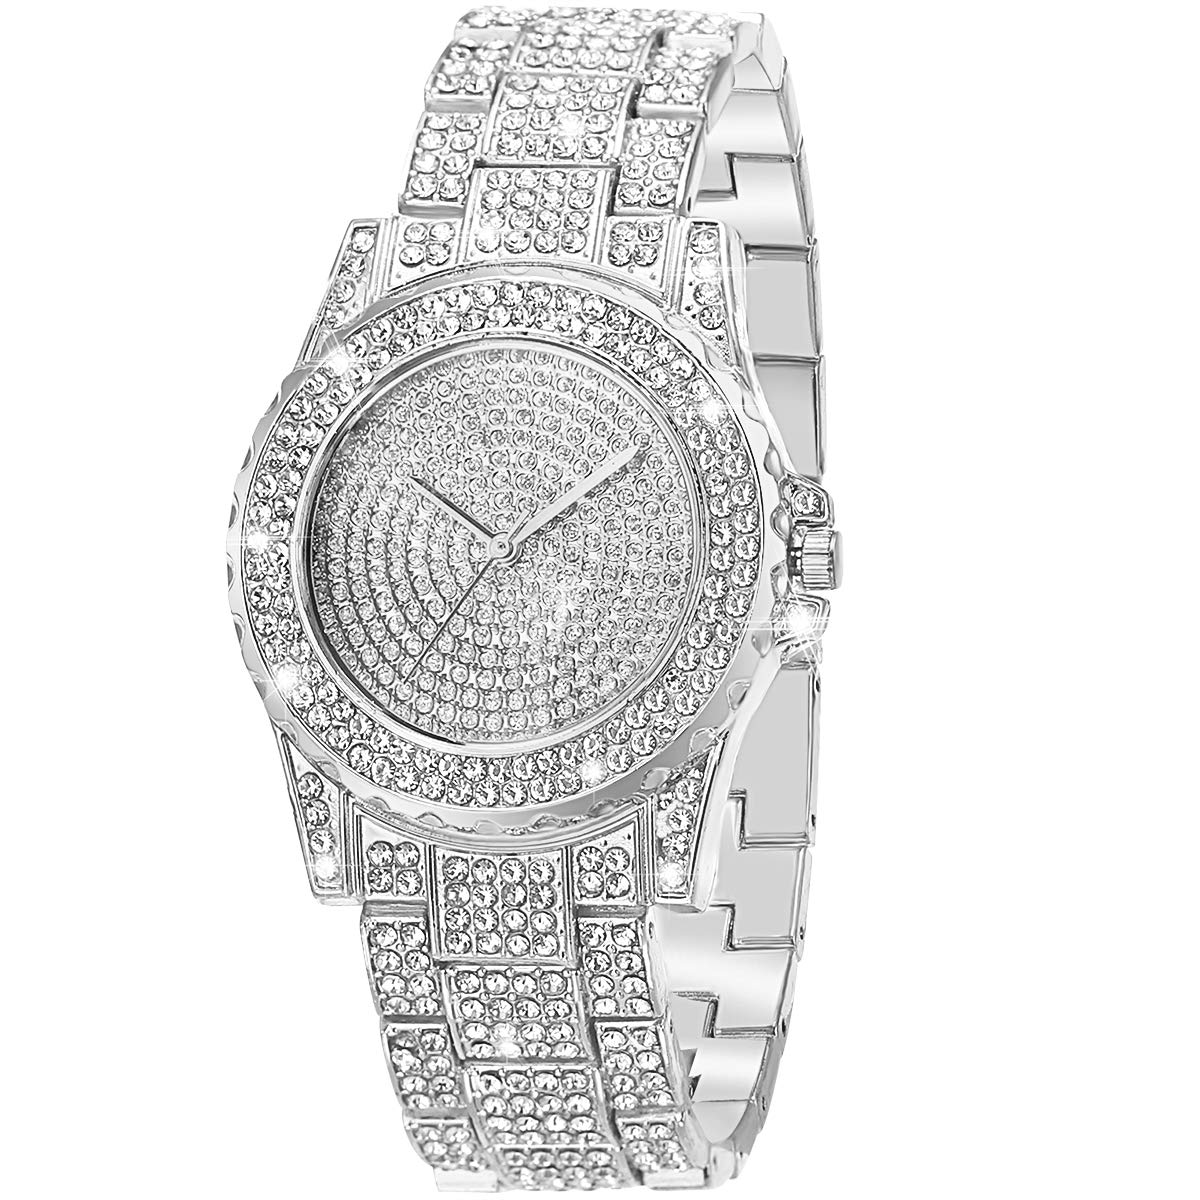 ManChDa Luxury Ladies Watch Iced Out Watch with Quartz Movement Crystal Rhinestone Diamond Watches for Women Stainless Steel Wristwatch Full Diamonds